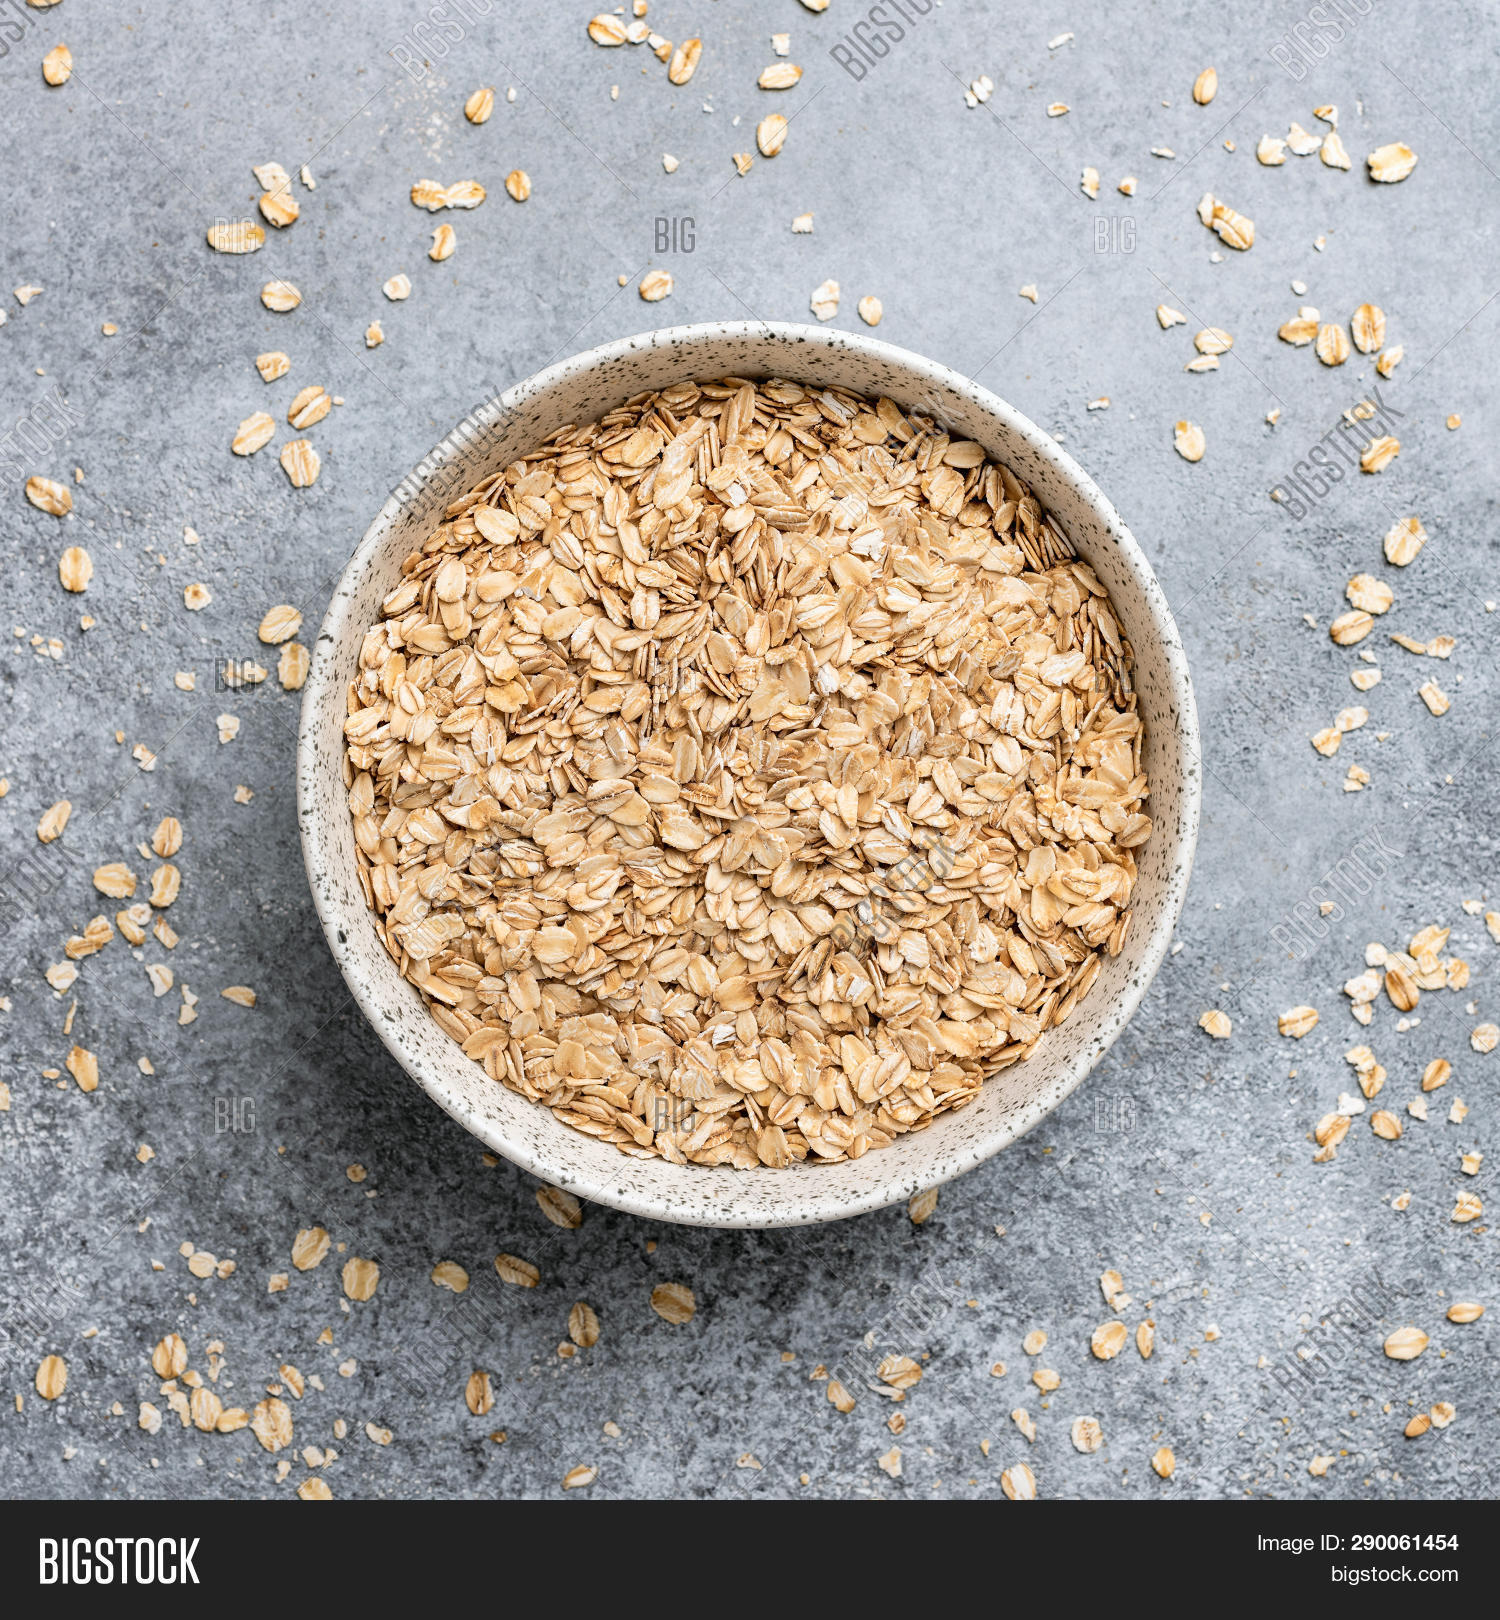 above,agriculture,background,bowl,bran,breakfast,cereal,closeup,cuisine,cut,cutout,diet,dietary,dry,fiber,food,grain,grained,granola,health,healthy,heap,ingredient,kitchen,macro,meal,morning,natural,nature,nutrition,oat,oatmeal,organic,pile,porridge,raw,rolled,rustic,seed,square,table,vegan,vegetarian,wheat,white,whole,wooden